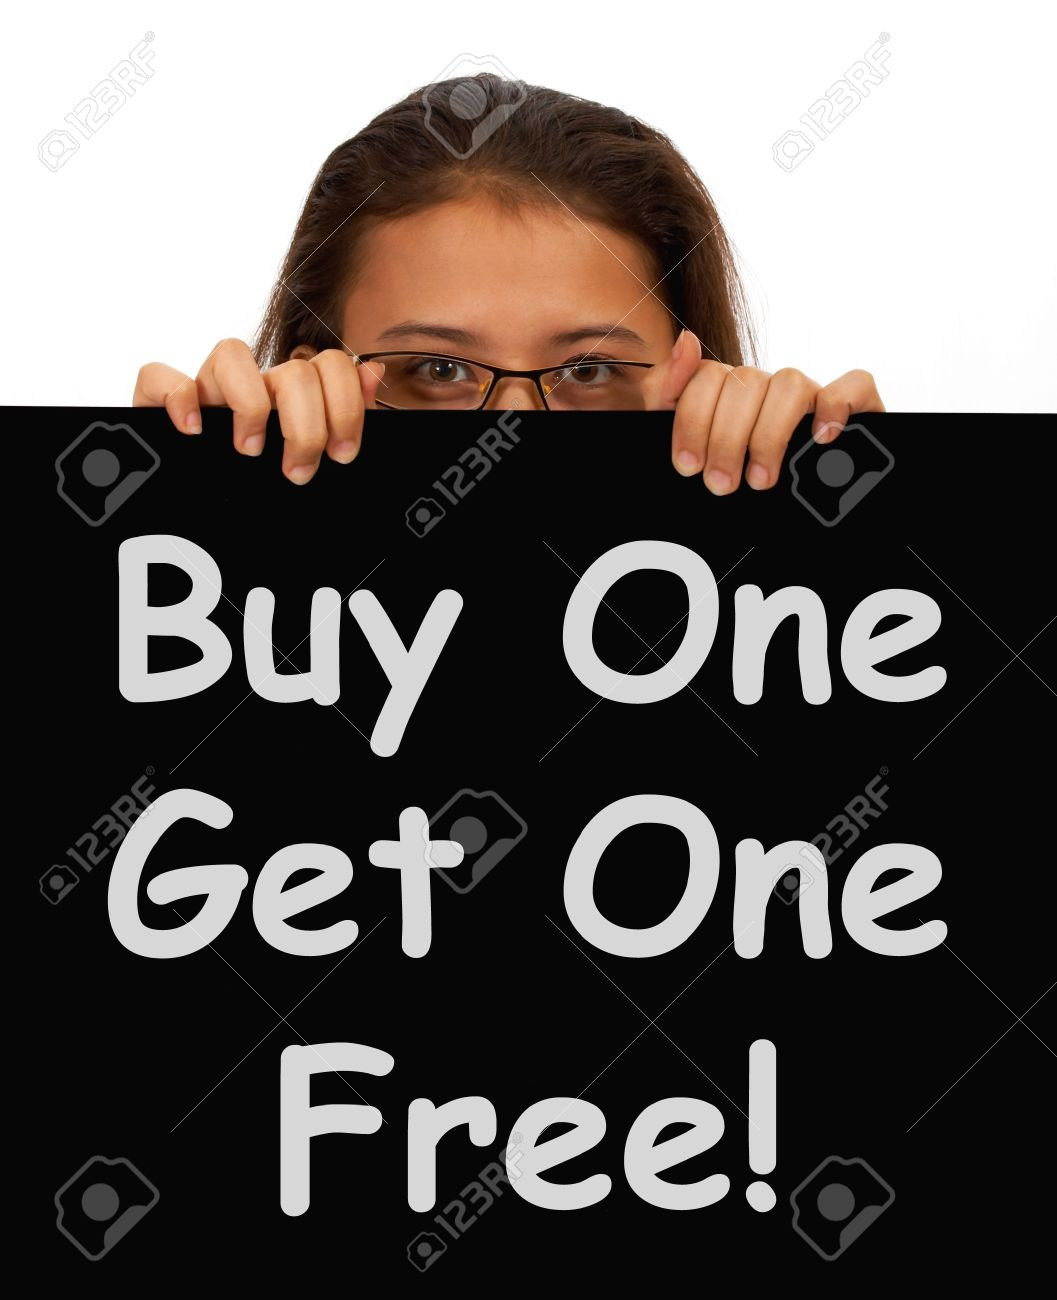 Buy One Get 1 Free Sign Shows Discounts Or Reductions Stock Photo 14027210